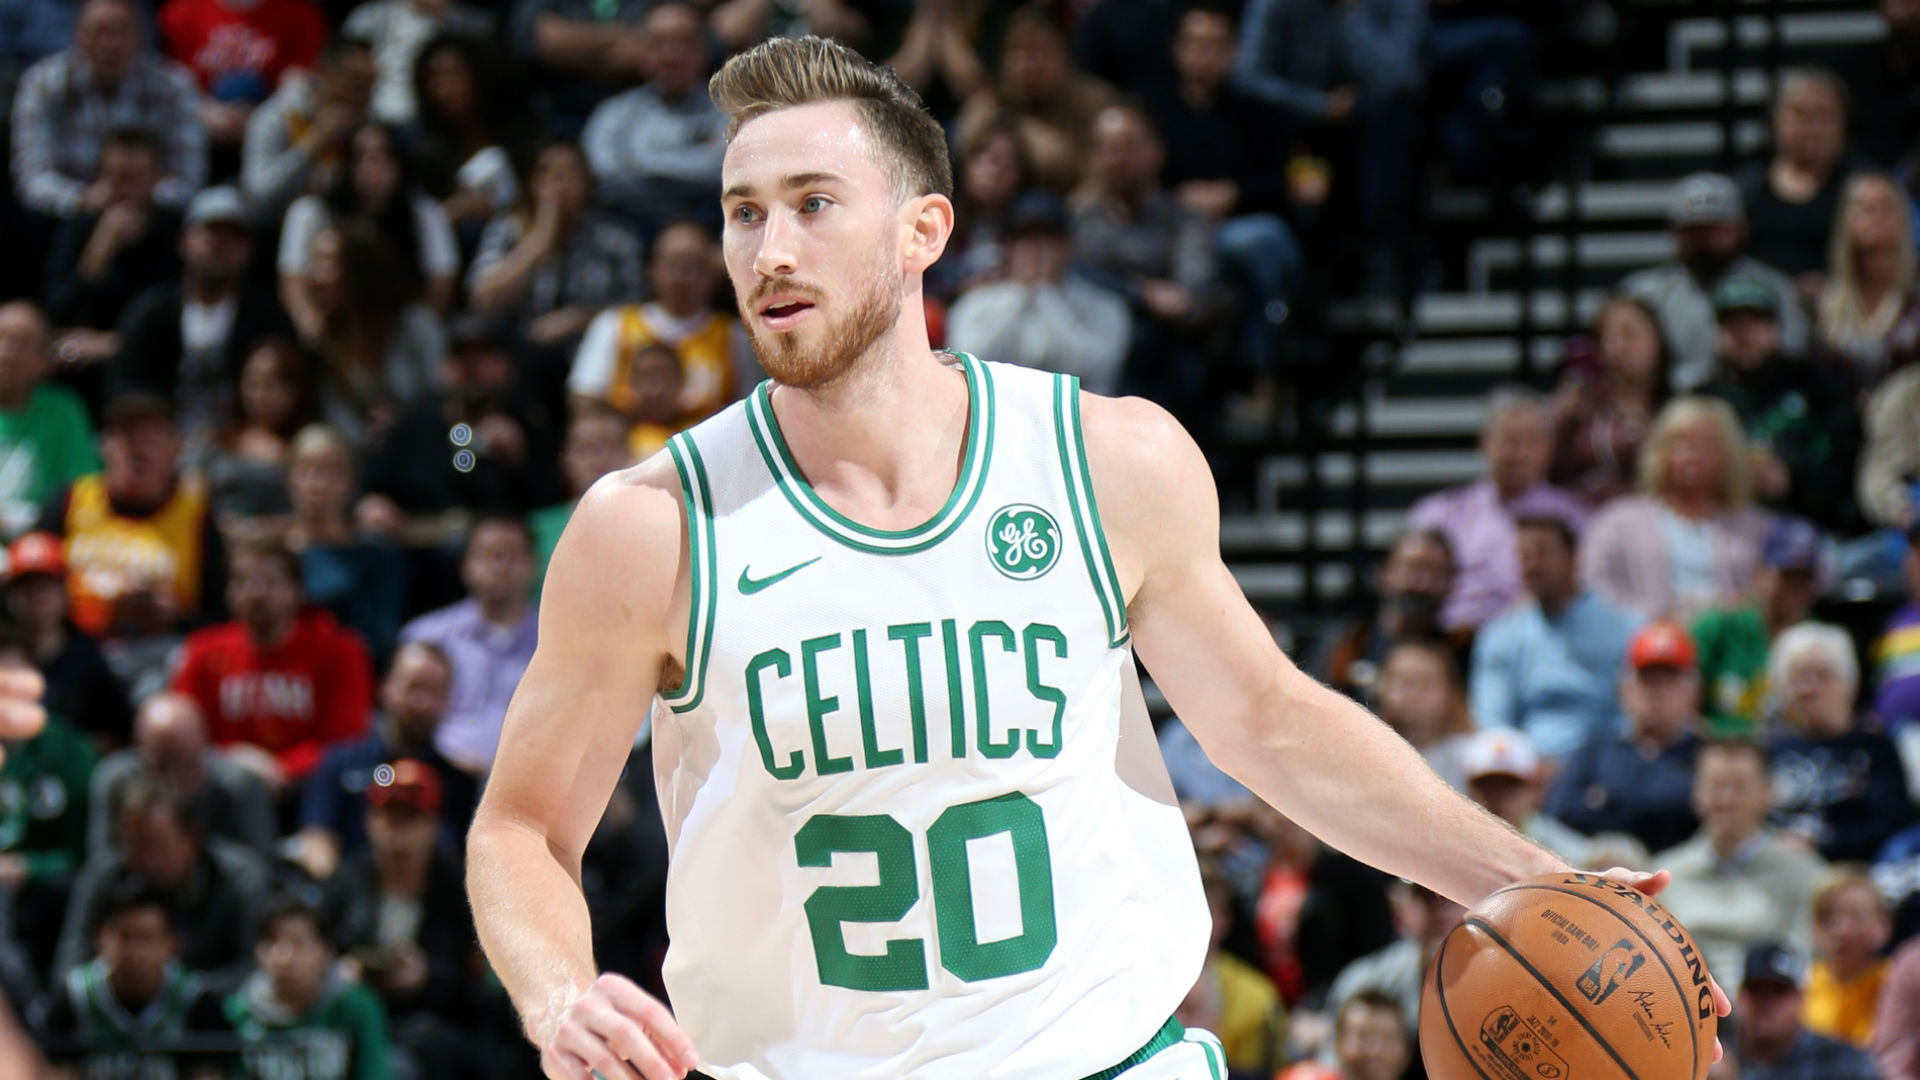 Celtics Cavaliers Deals NBA trade deal Gordon Hayward Jordan Clarkson Tristan Thompson